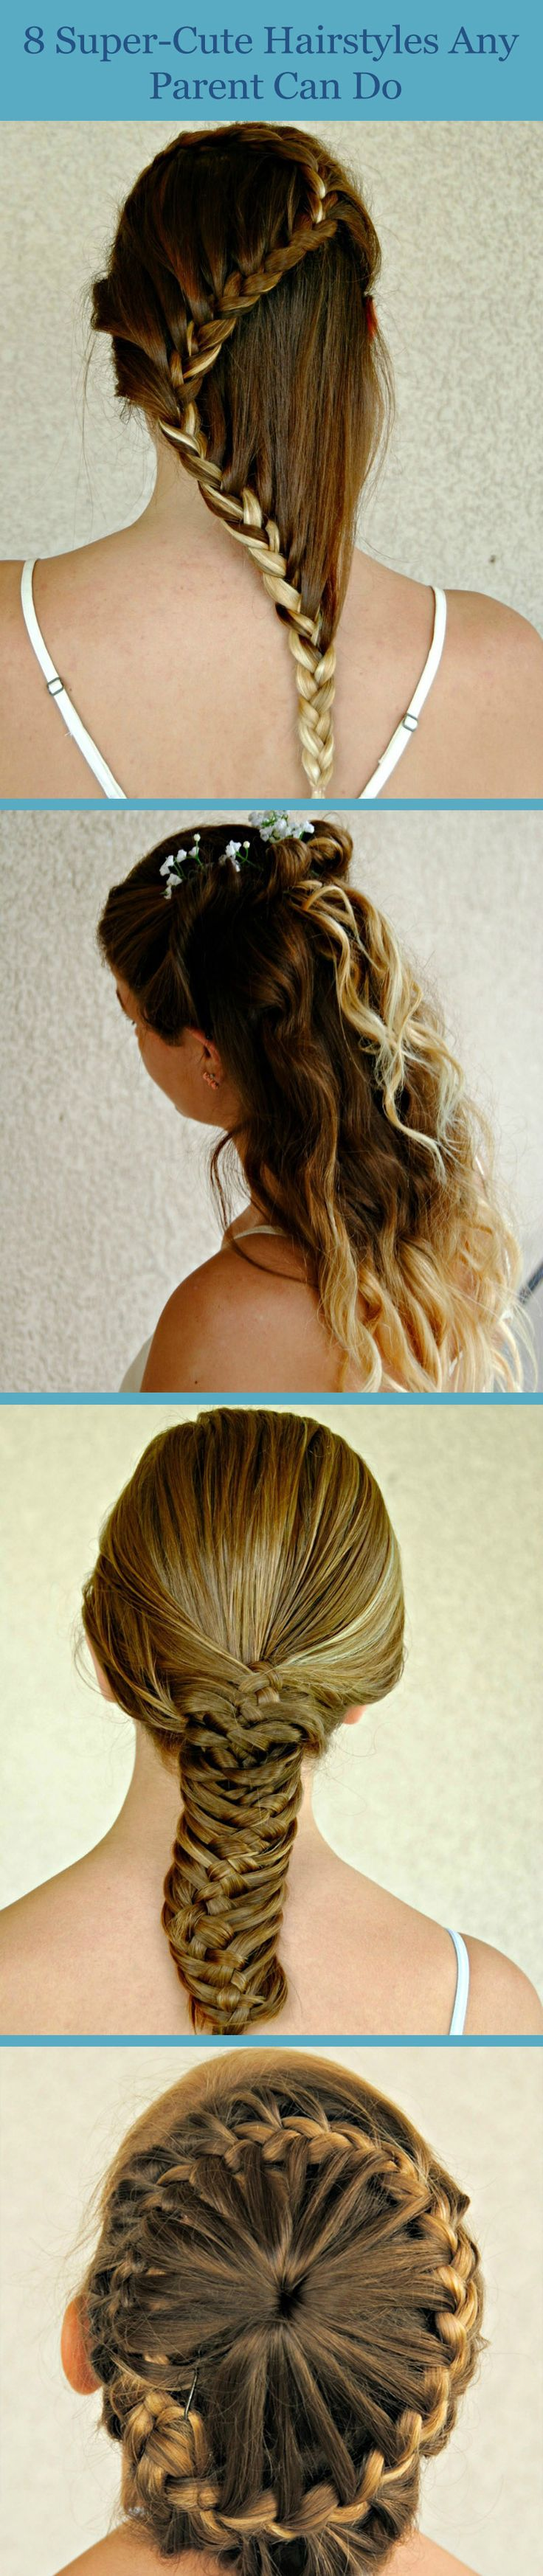 New hairstyles Easy kid hairstyles and Hairstyles on Pinterest